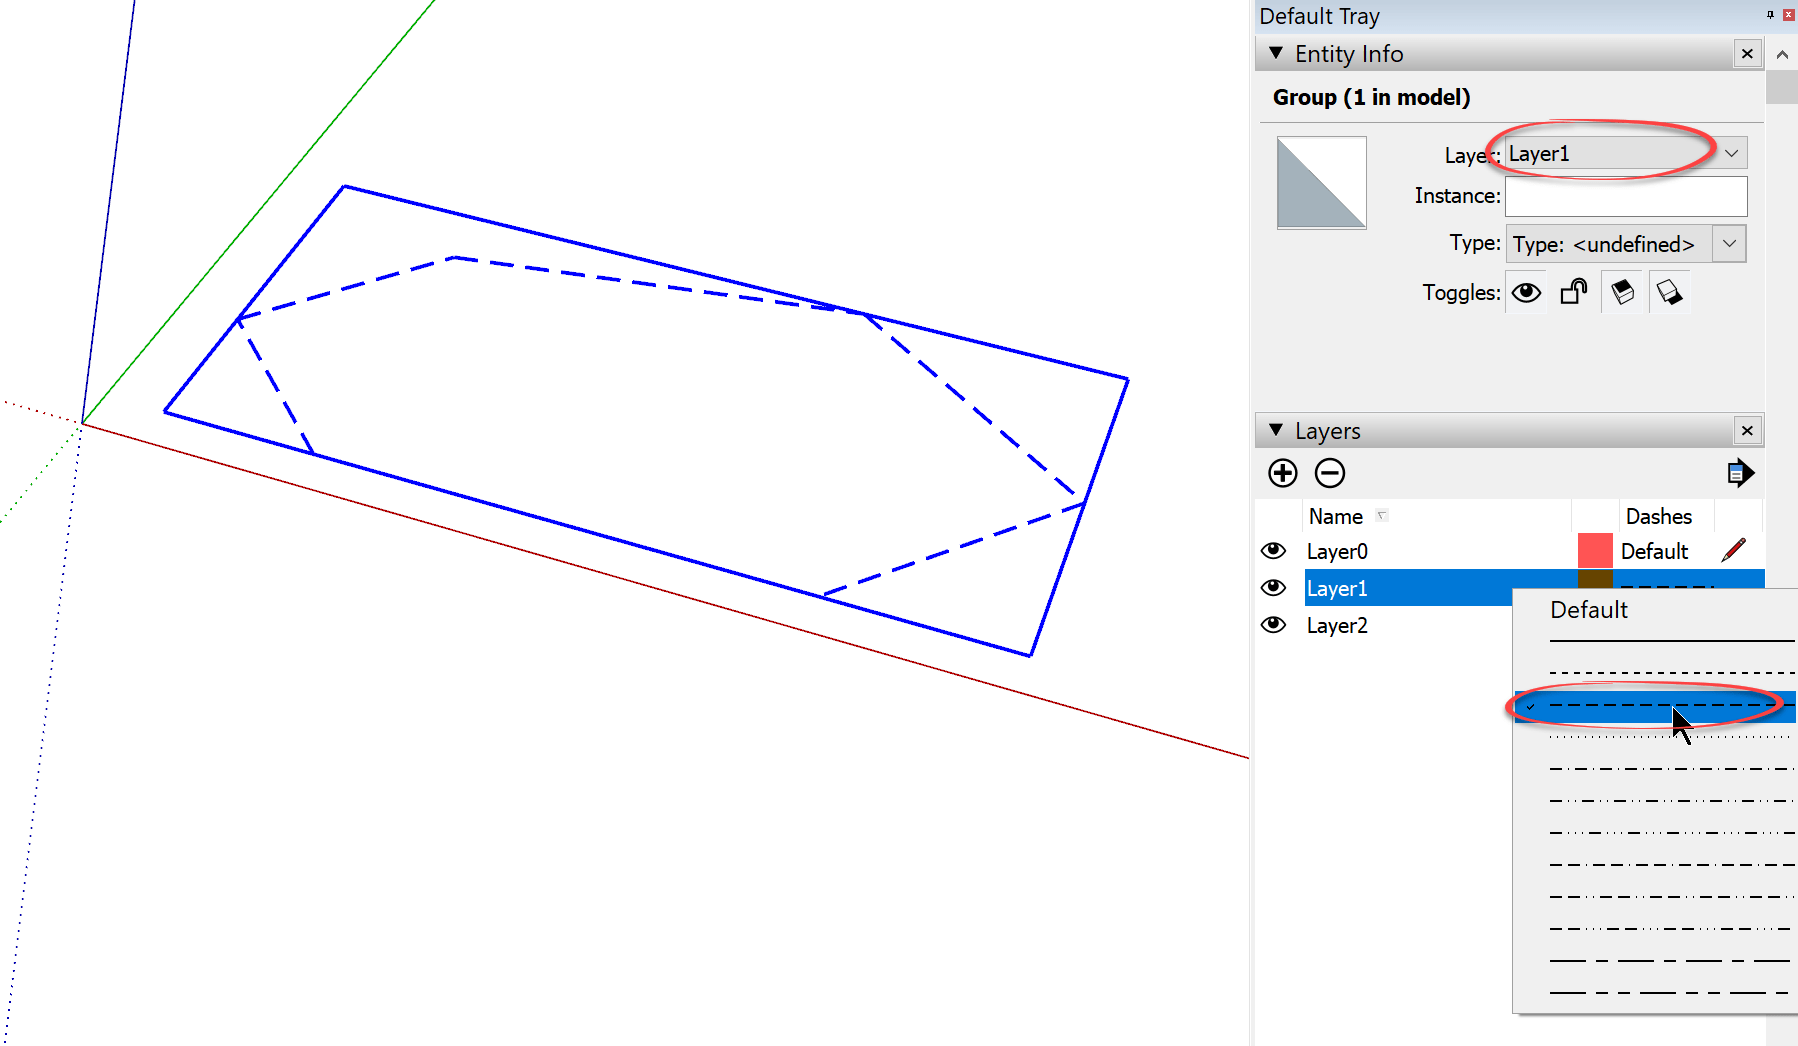 You Dont Want To Change The Dash Style Of Layer Because Then All Of The Edges In Your Model Will Be Overridden To Display That Dash